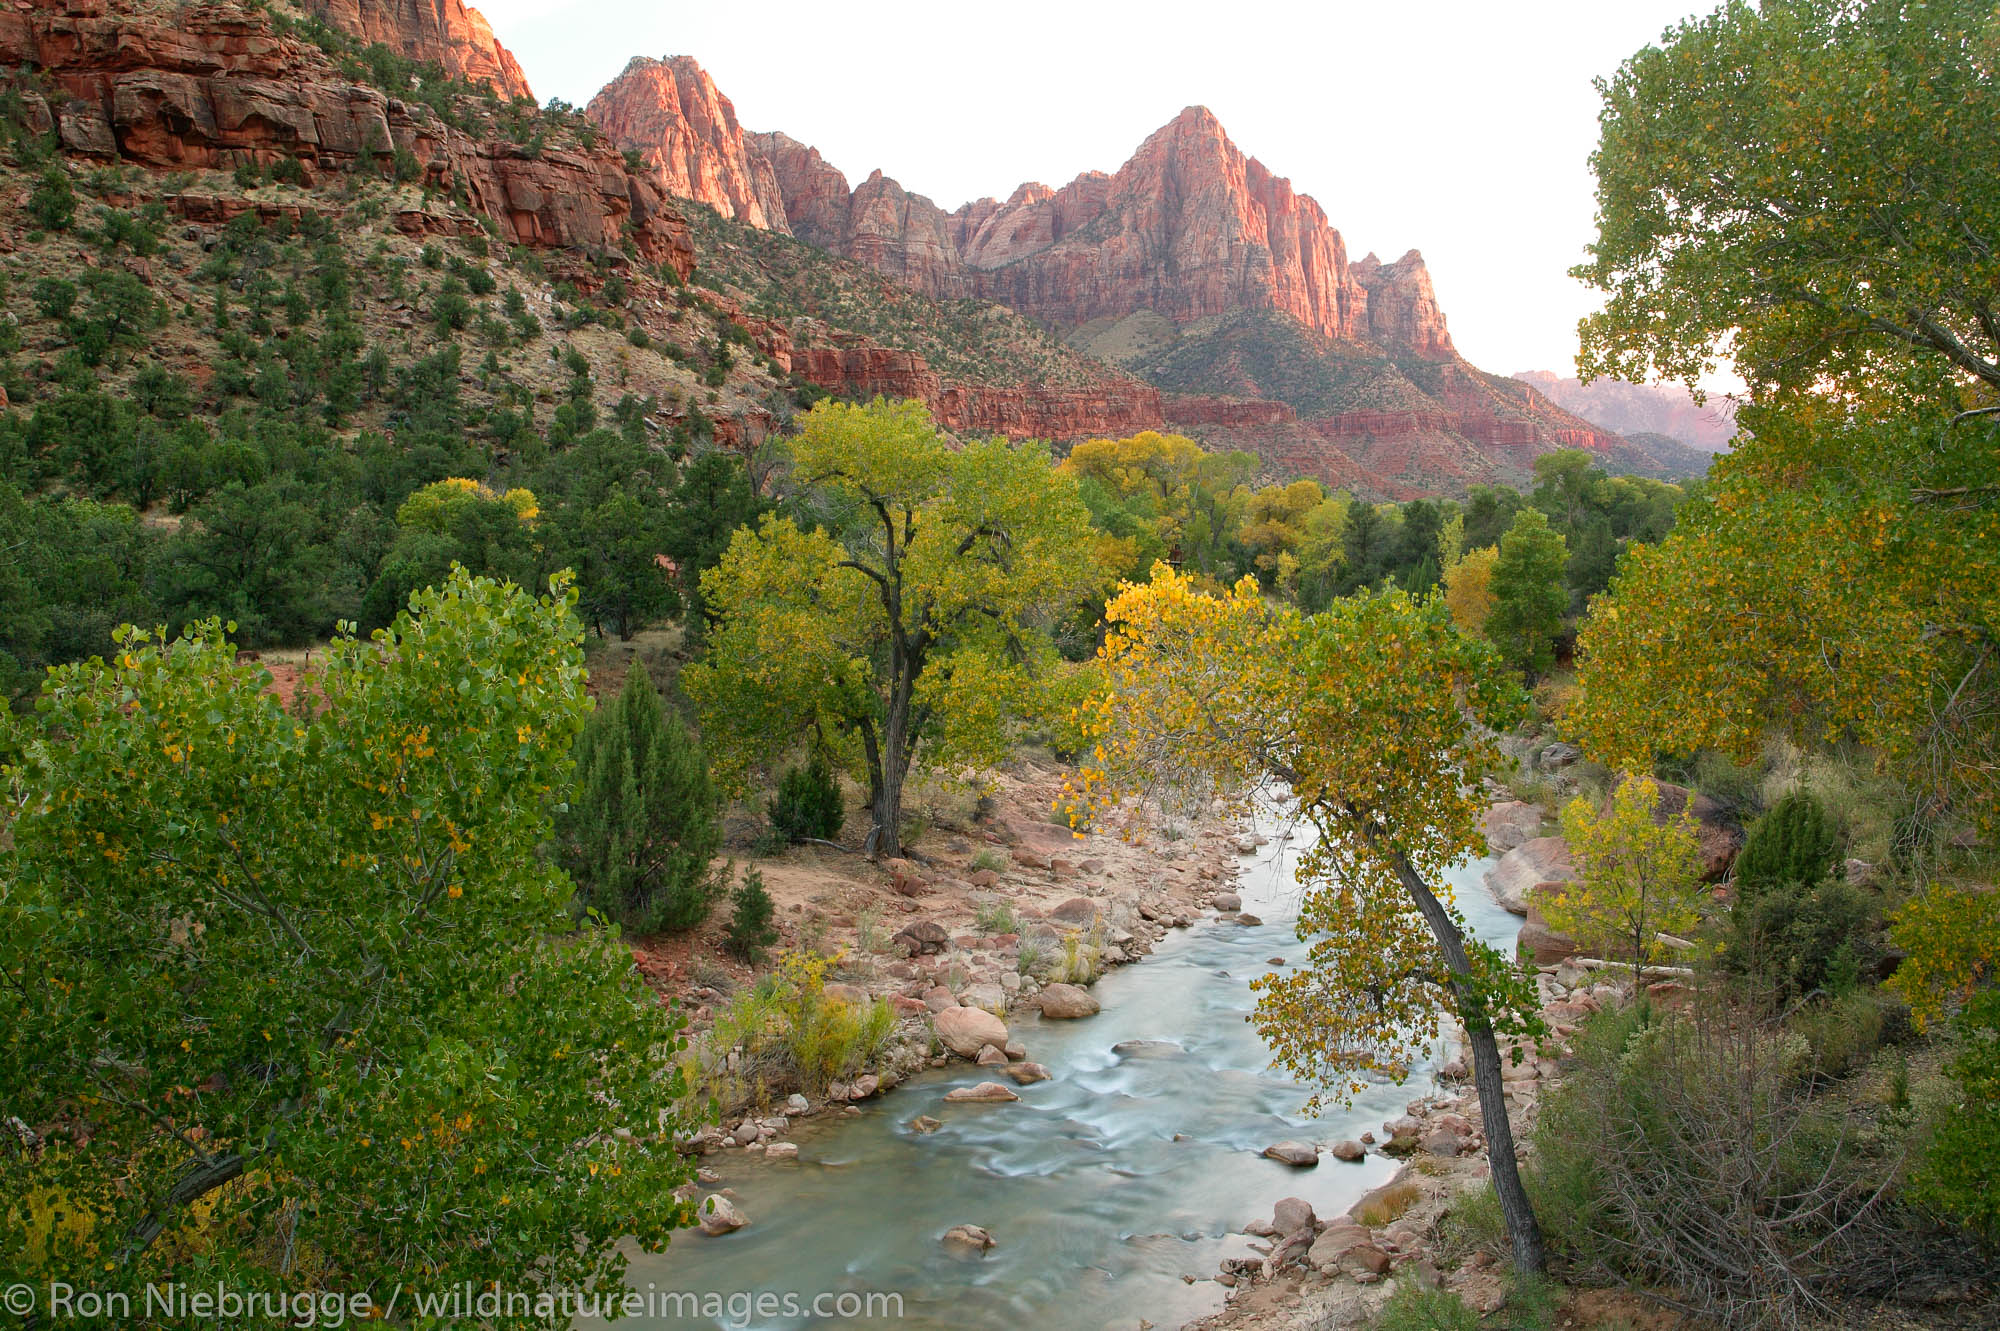 North Fork Virgin River and The Watchman, Zion National Park, Utah.